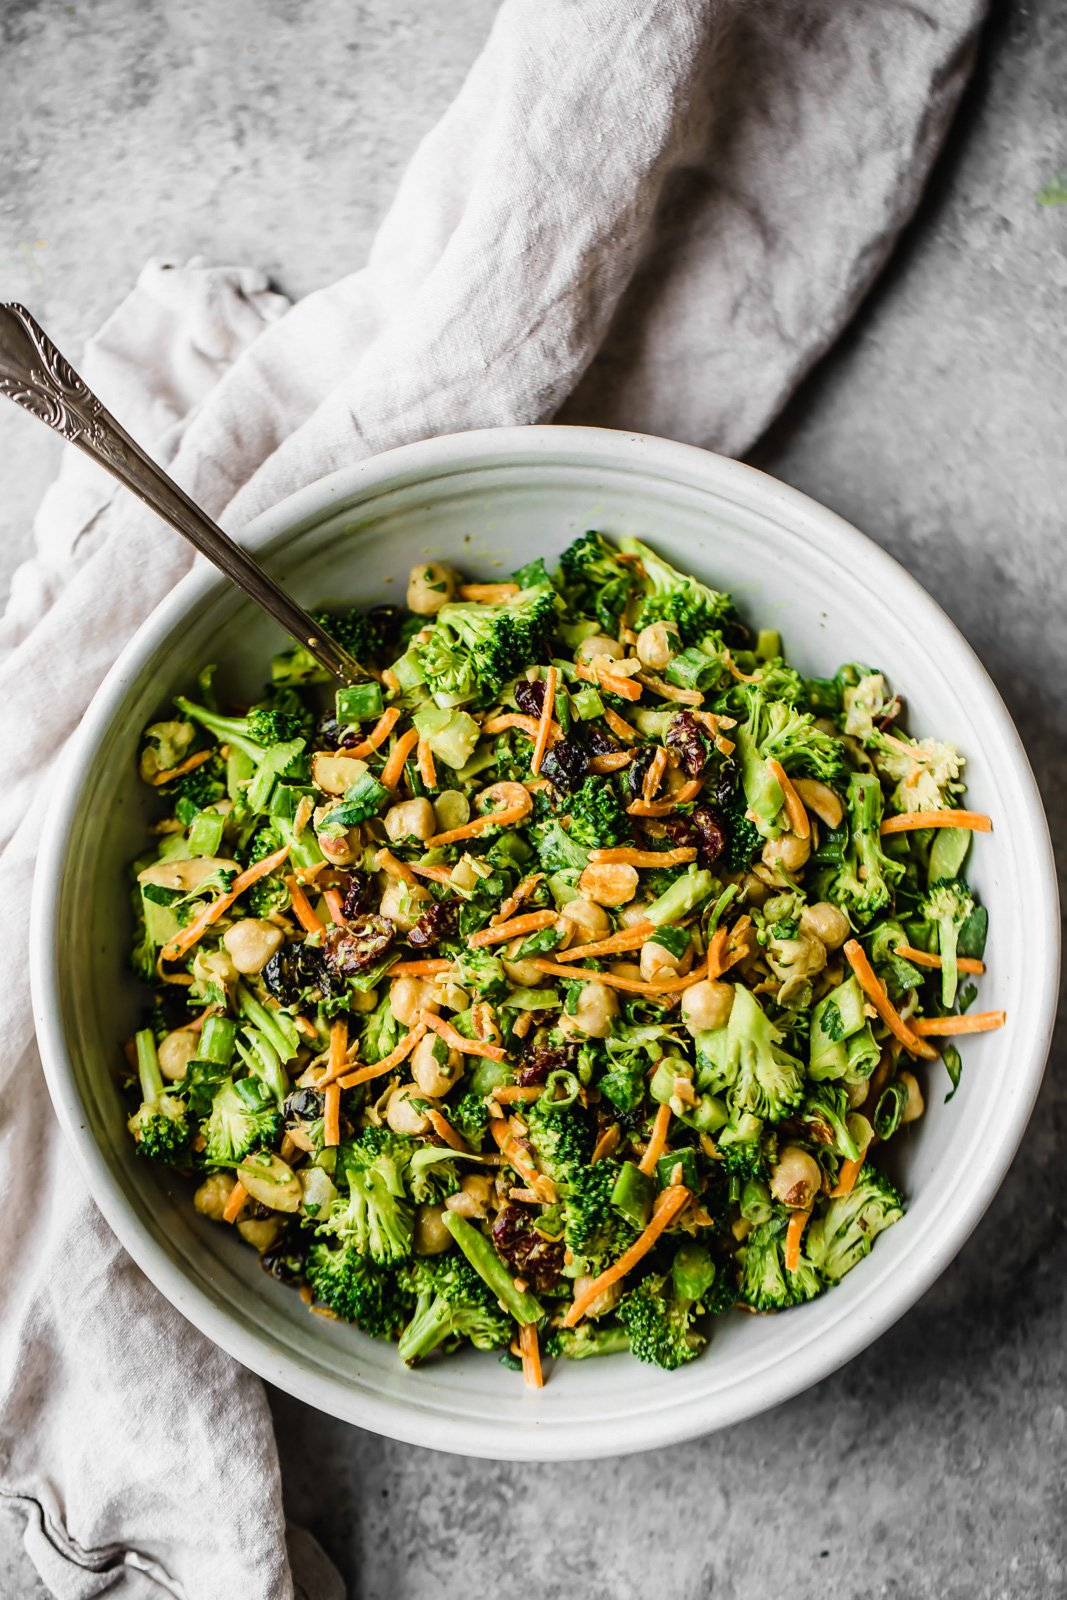 healthy recipes using tahini: broccoli salad with tahini dressing